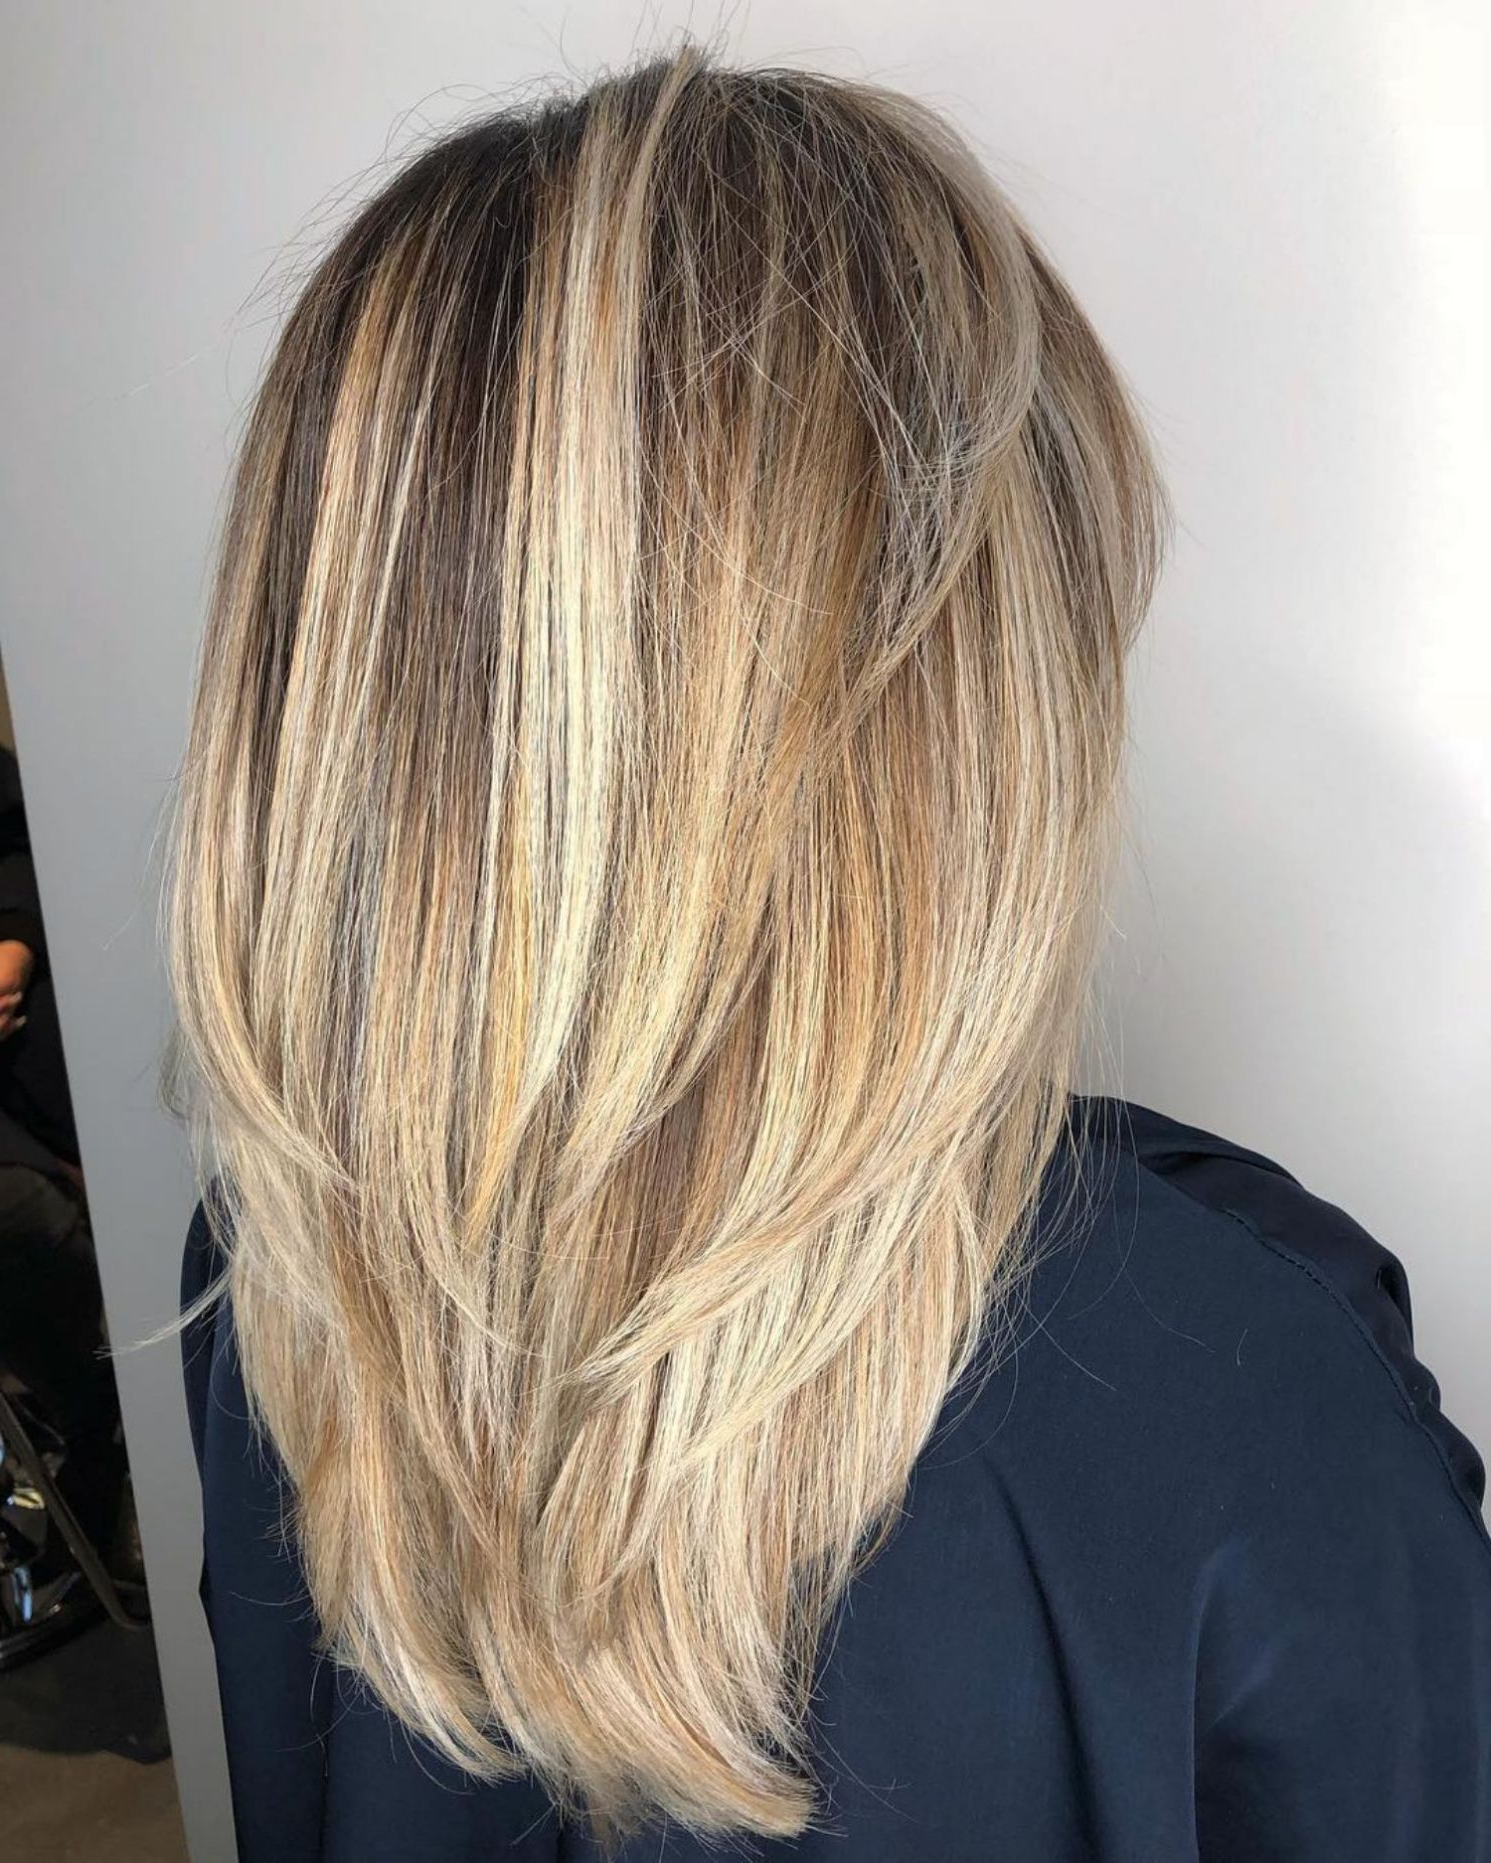 80 Cute Layered Hairstyles And Cuts For Long Hair In 2019 (Gallery 2 of 20)